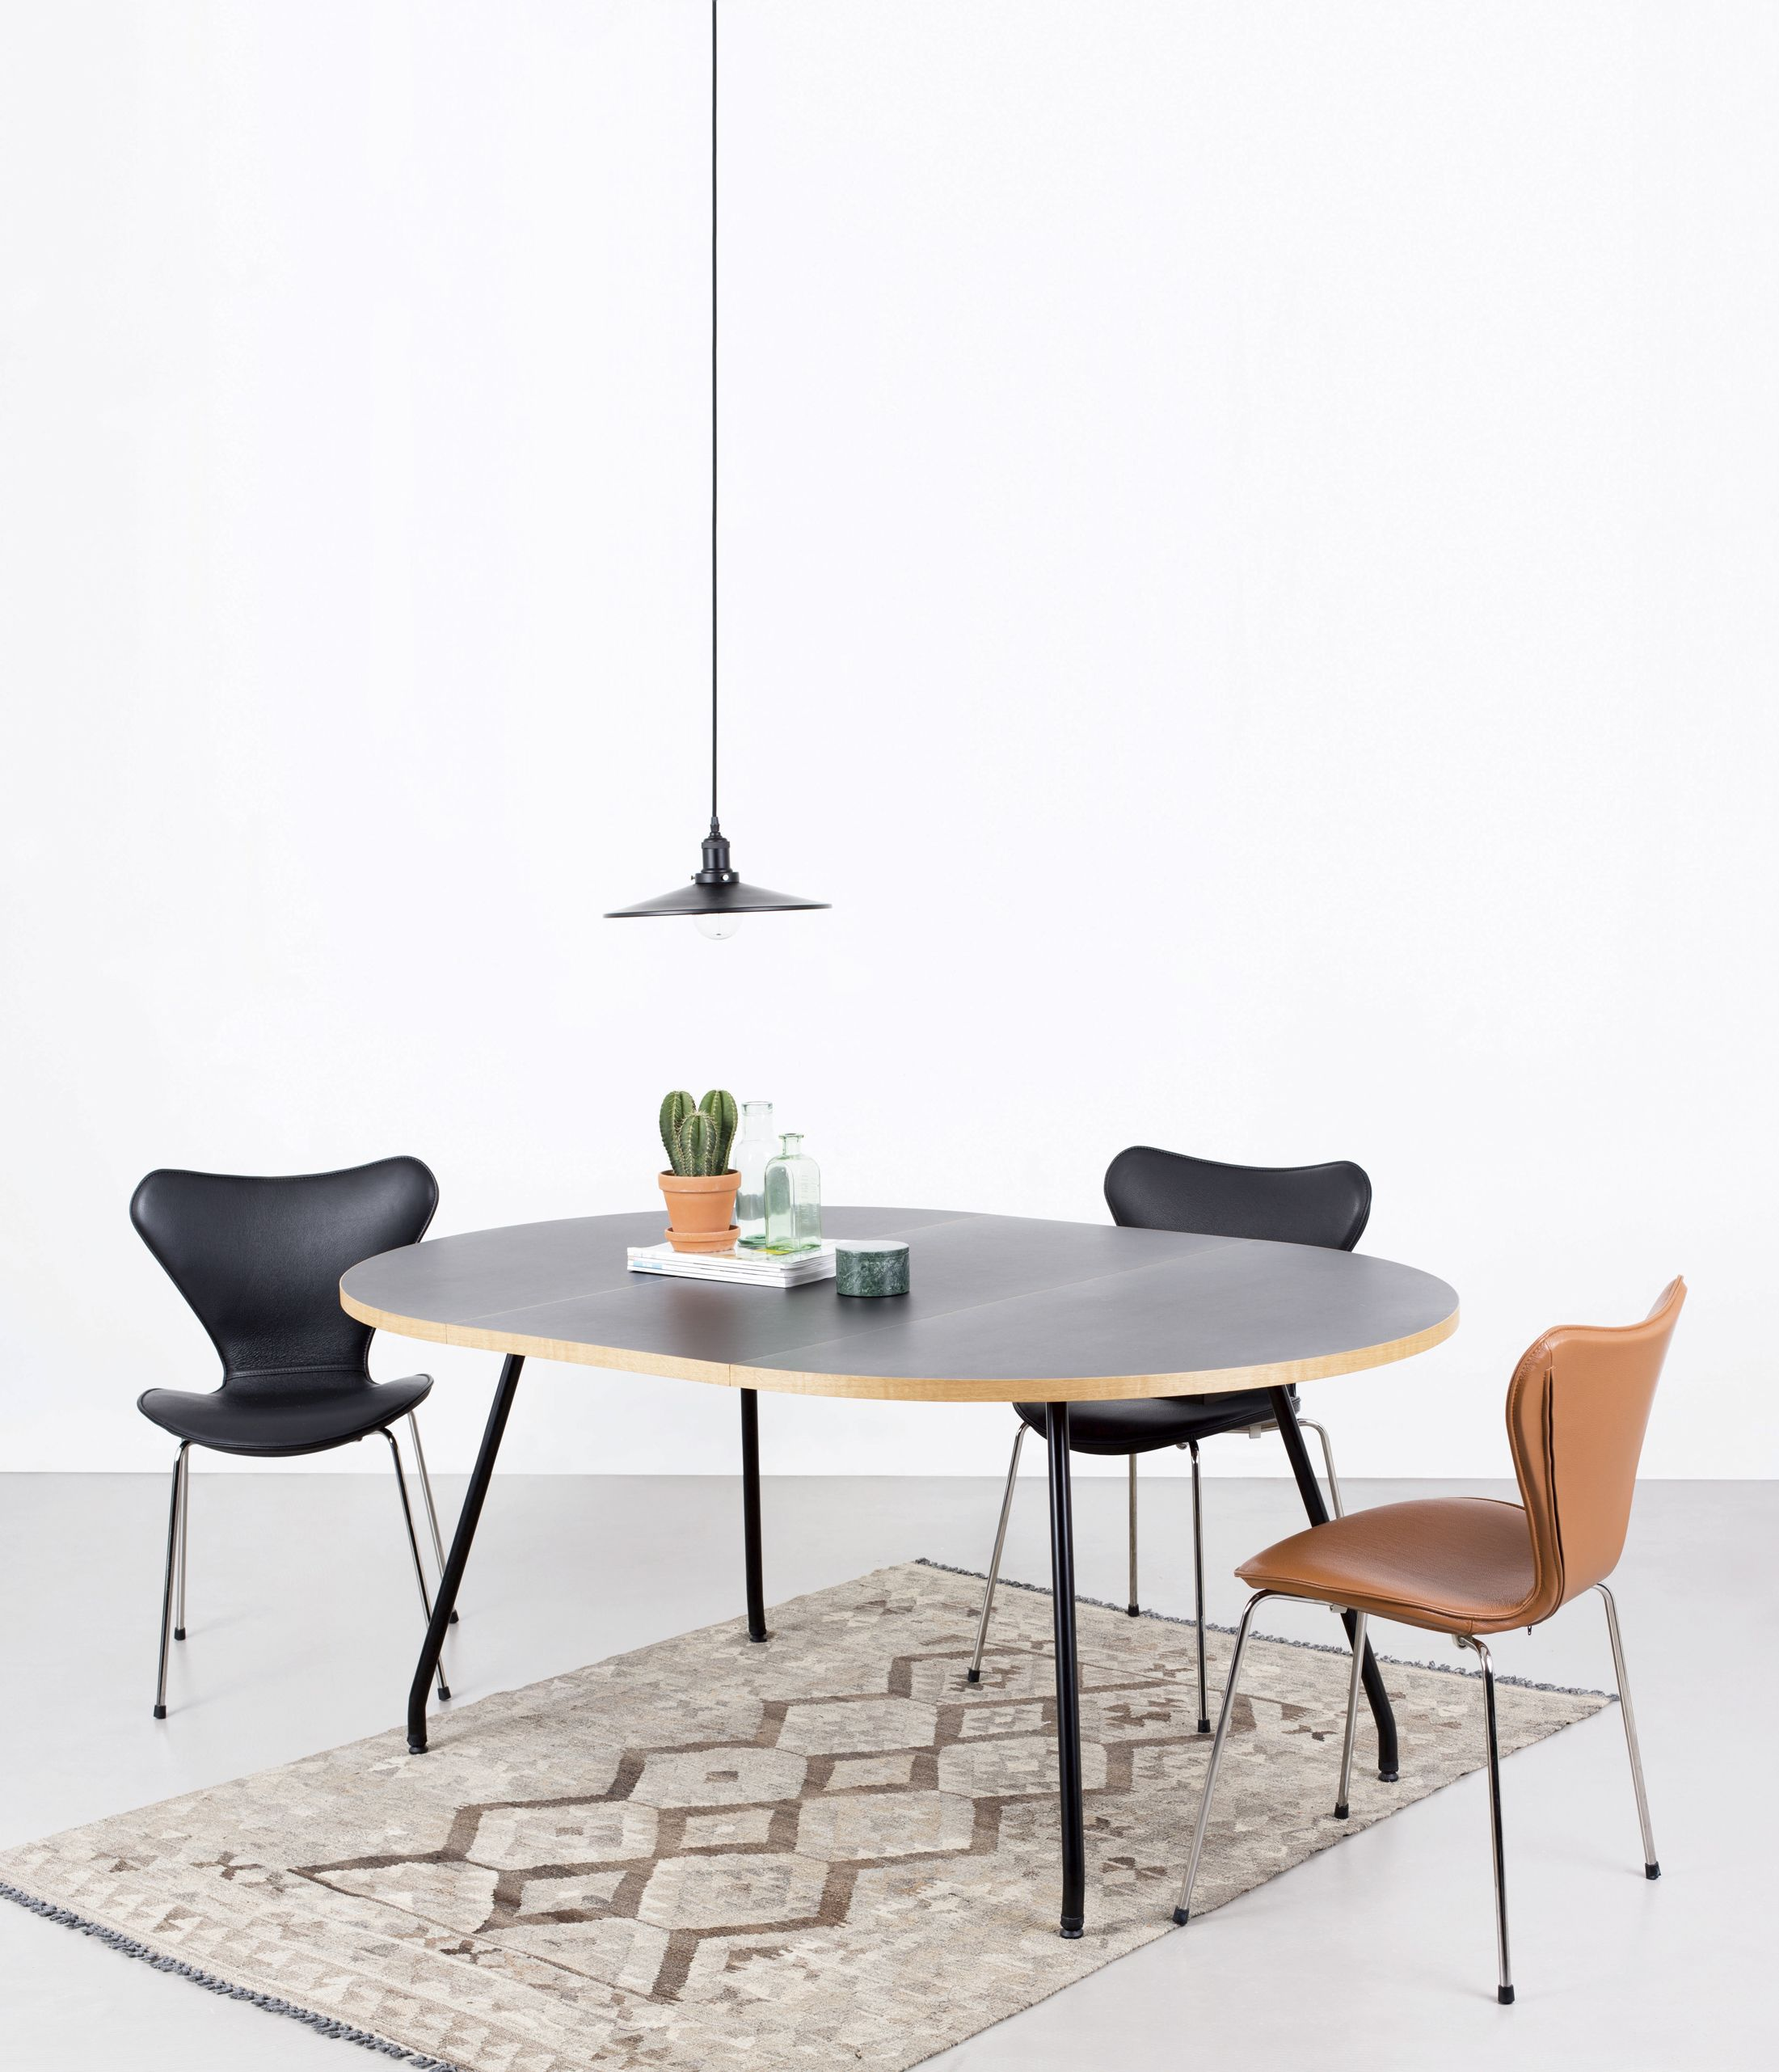 Full Cover At Bent Hansen We Make Full Covers In Leather Or Fabric For Arne Jacobsen S 3107 Chair A Simple Way Beautiful Chair Coffee Table Furniture Making